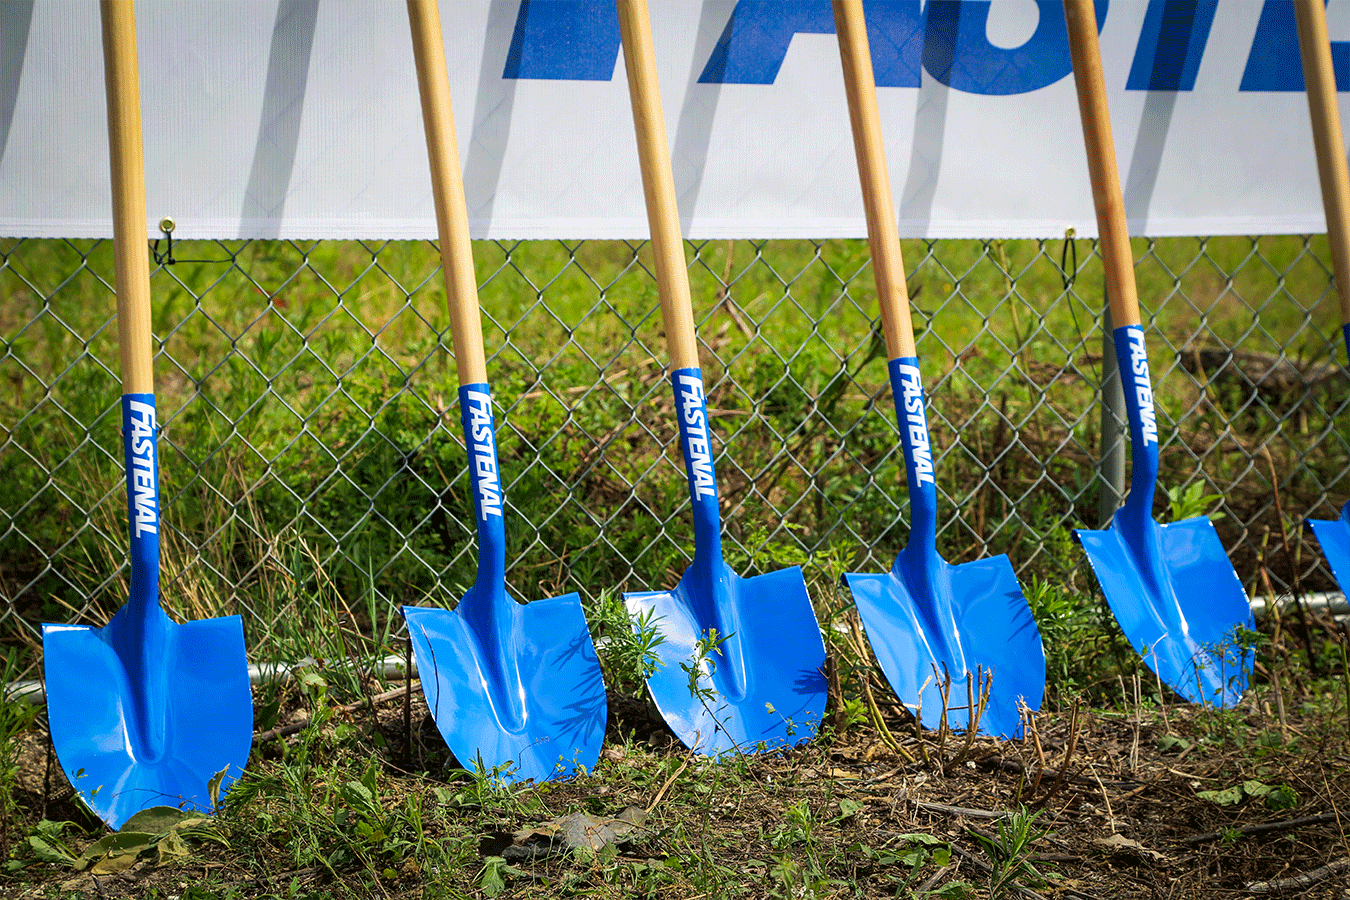 16-Fastenal-Groundbreaking-Ceremony-7-22-2020